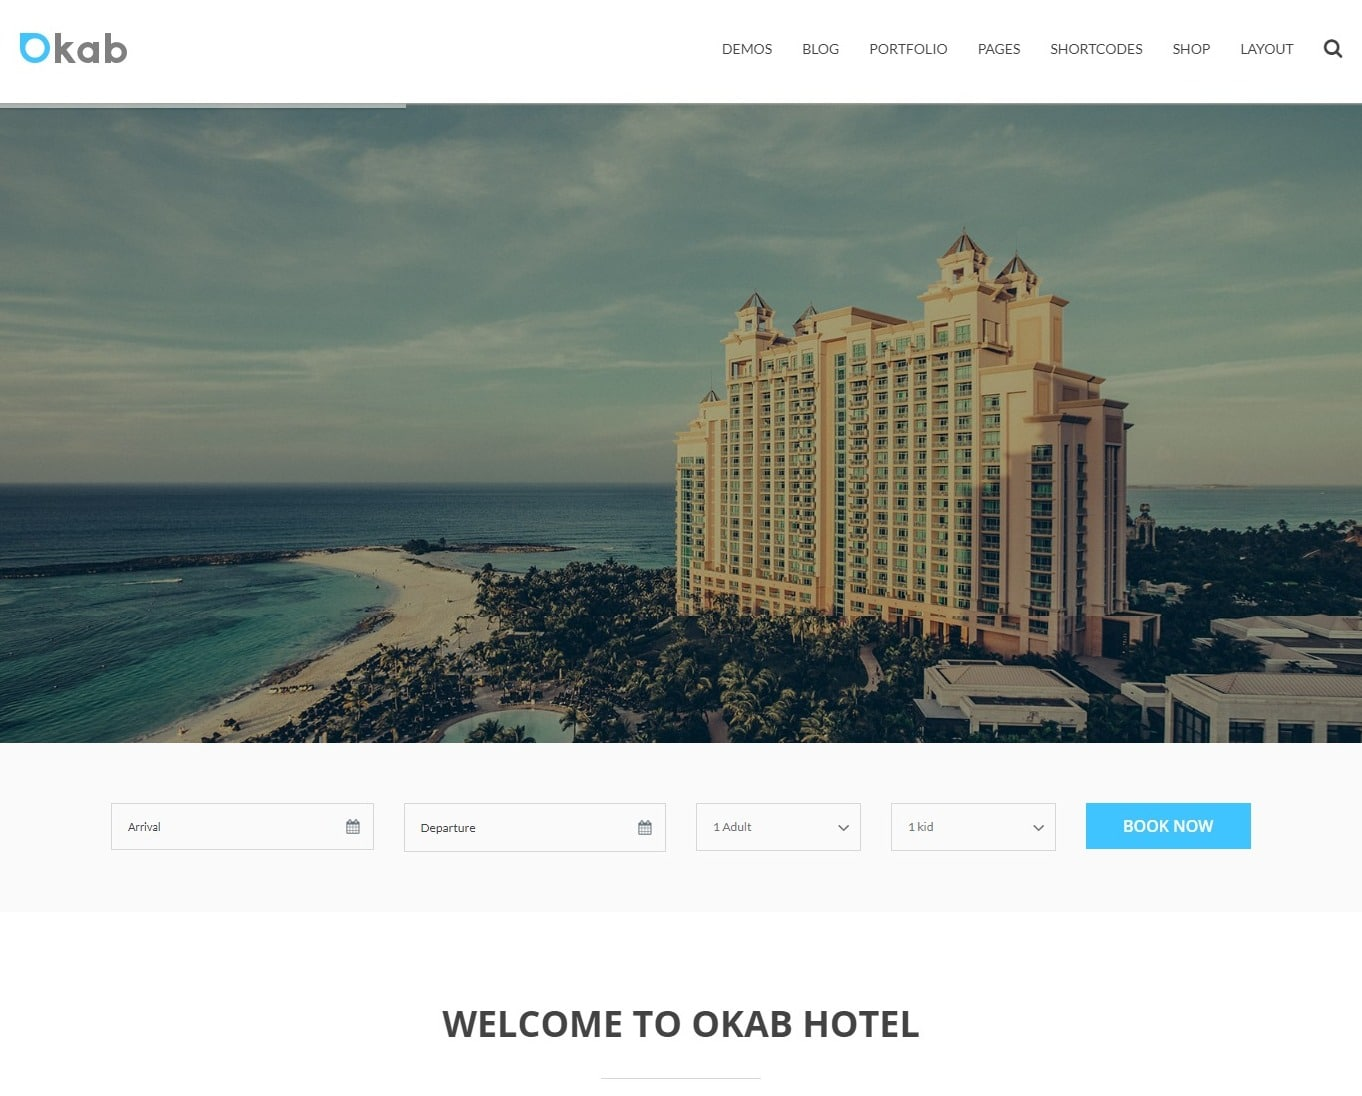 okab-hotel-website-template